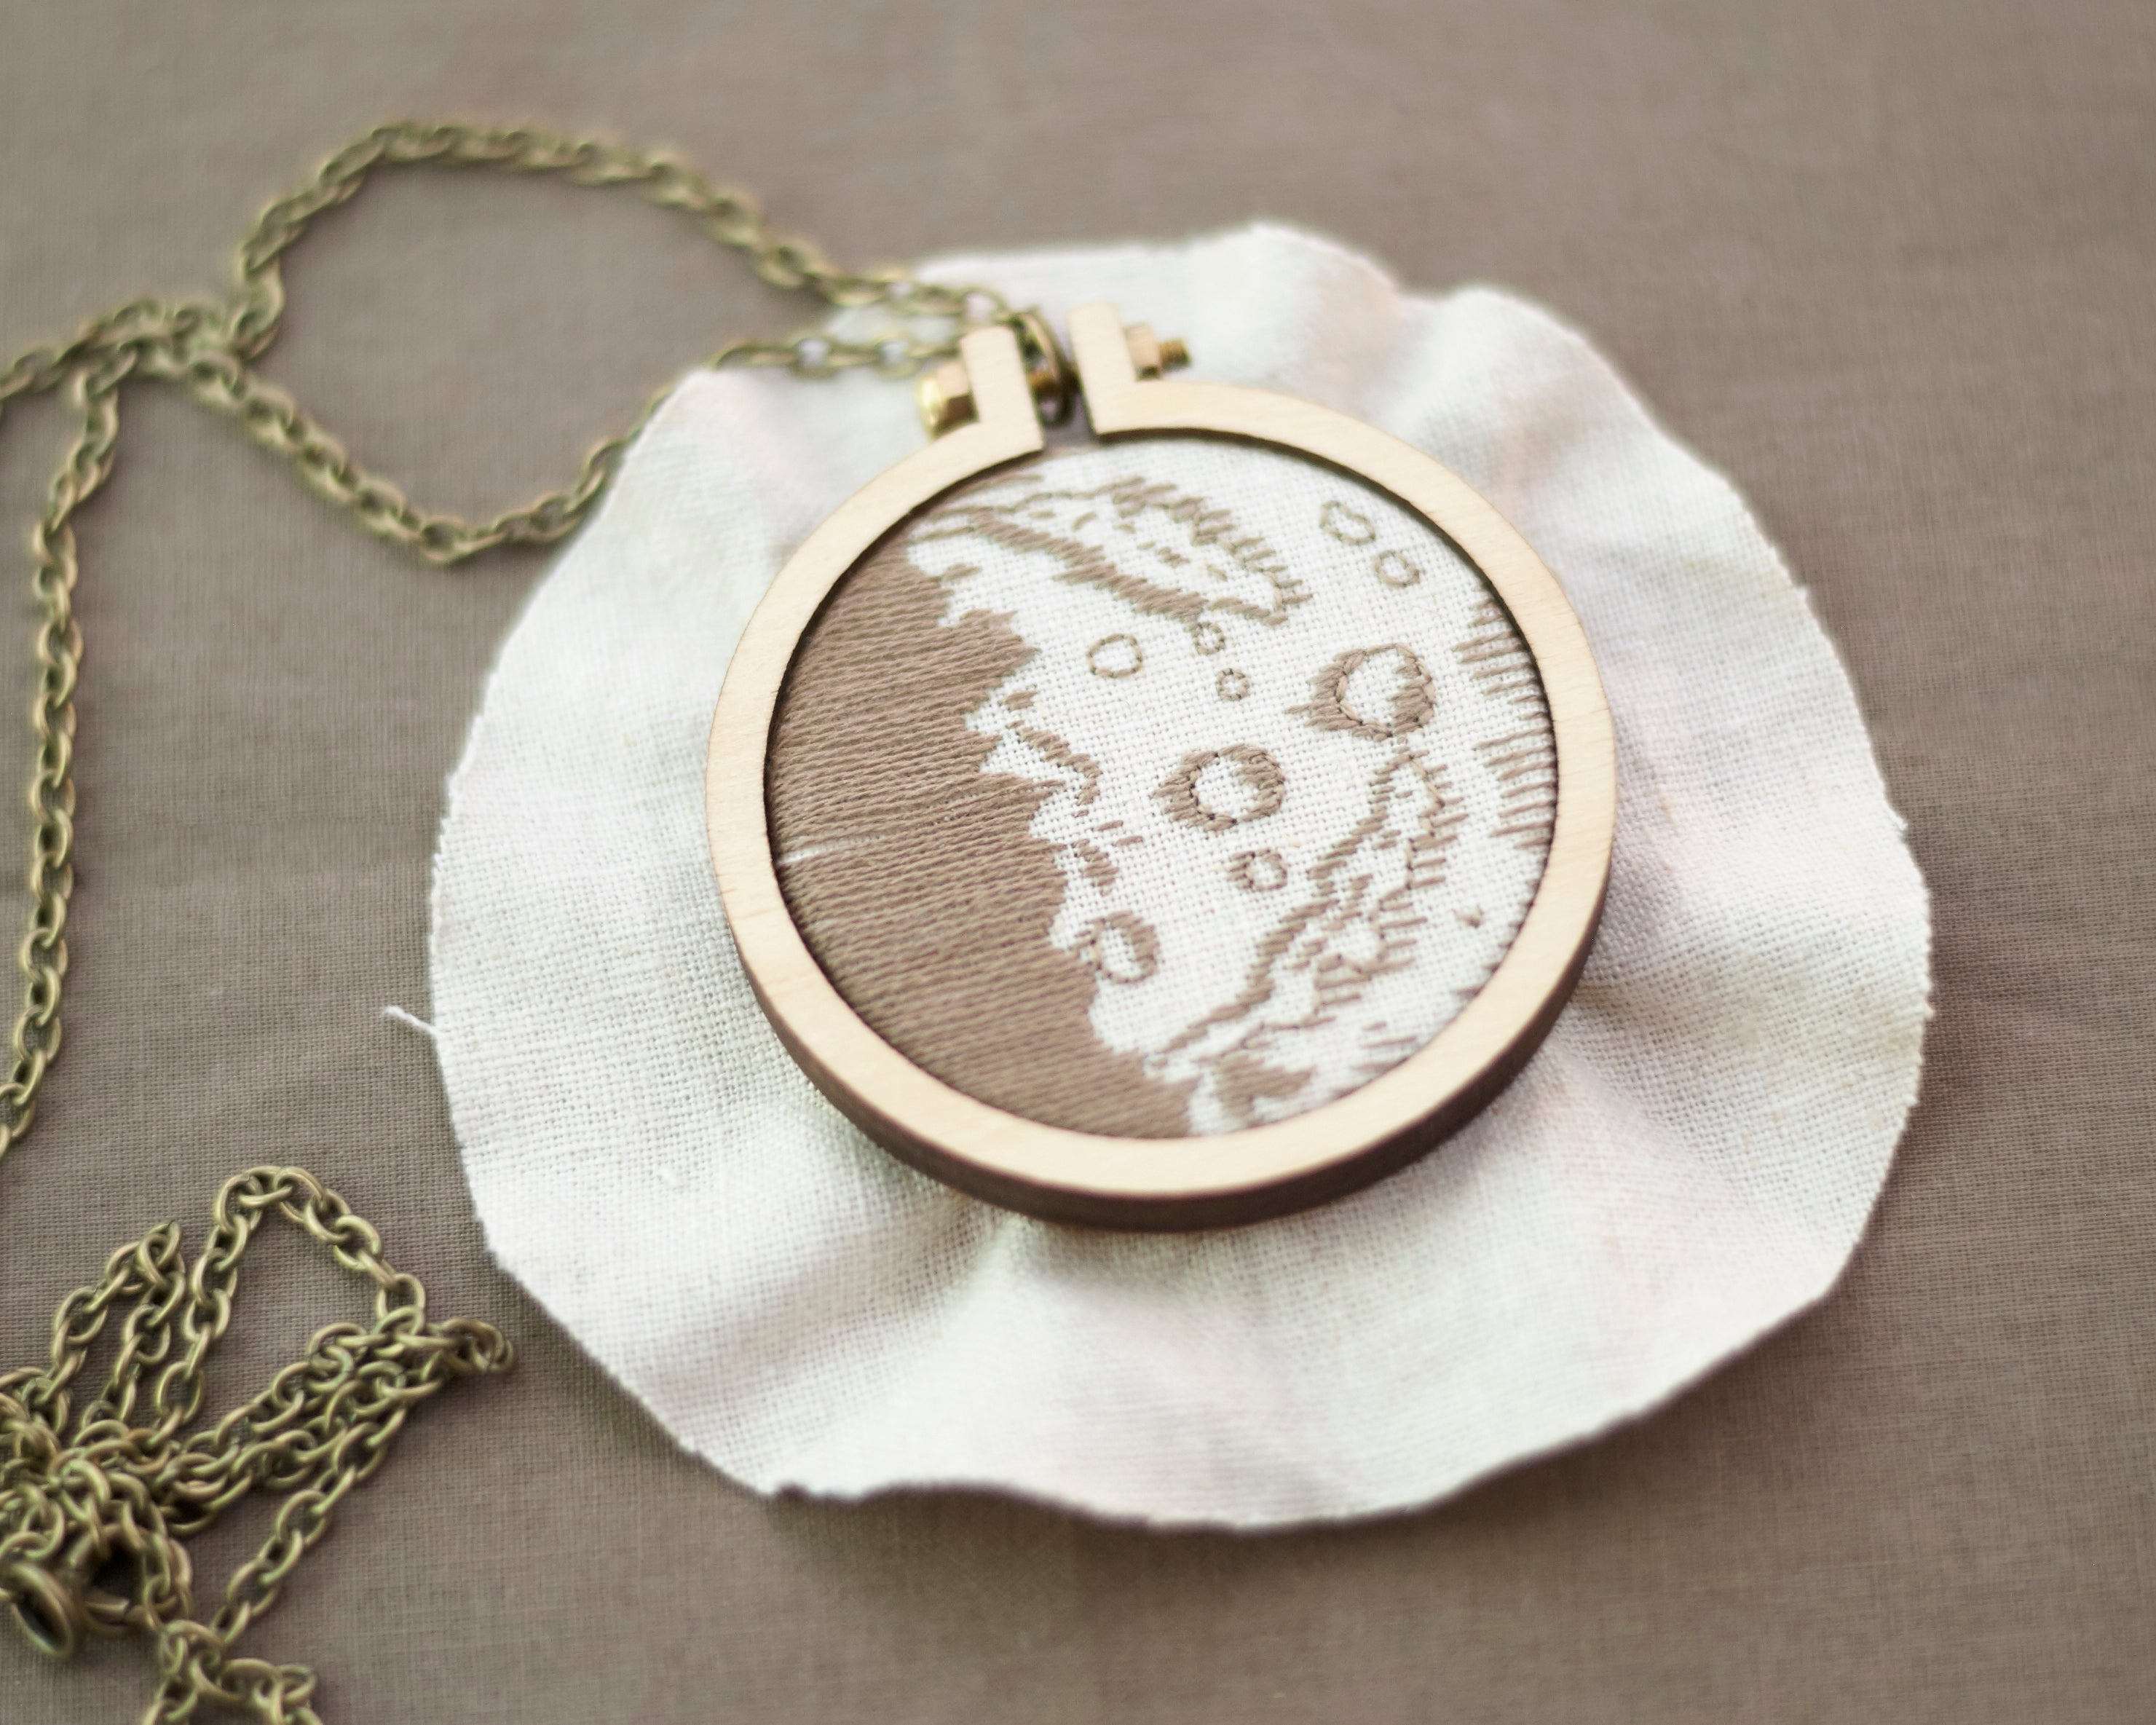 Moon Phase Mini Dandelyne Embroidery